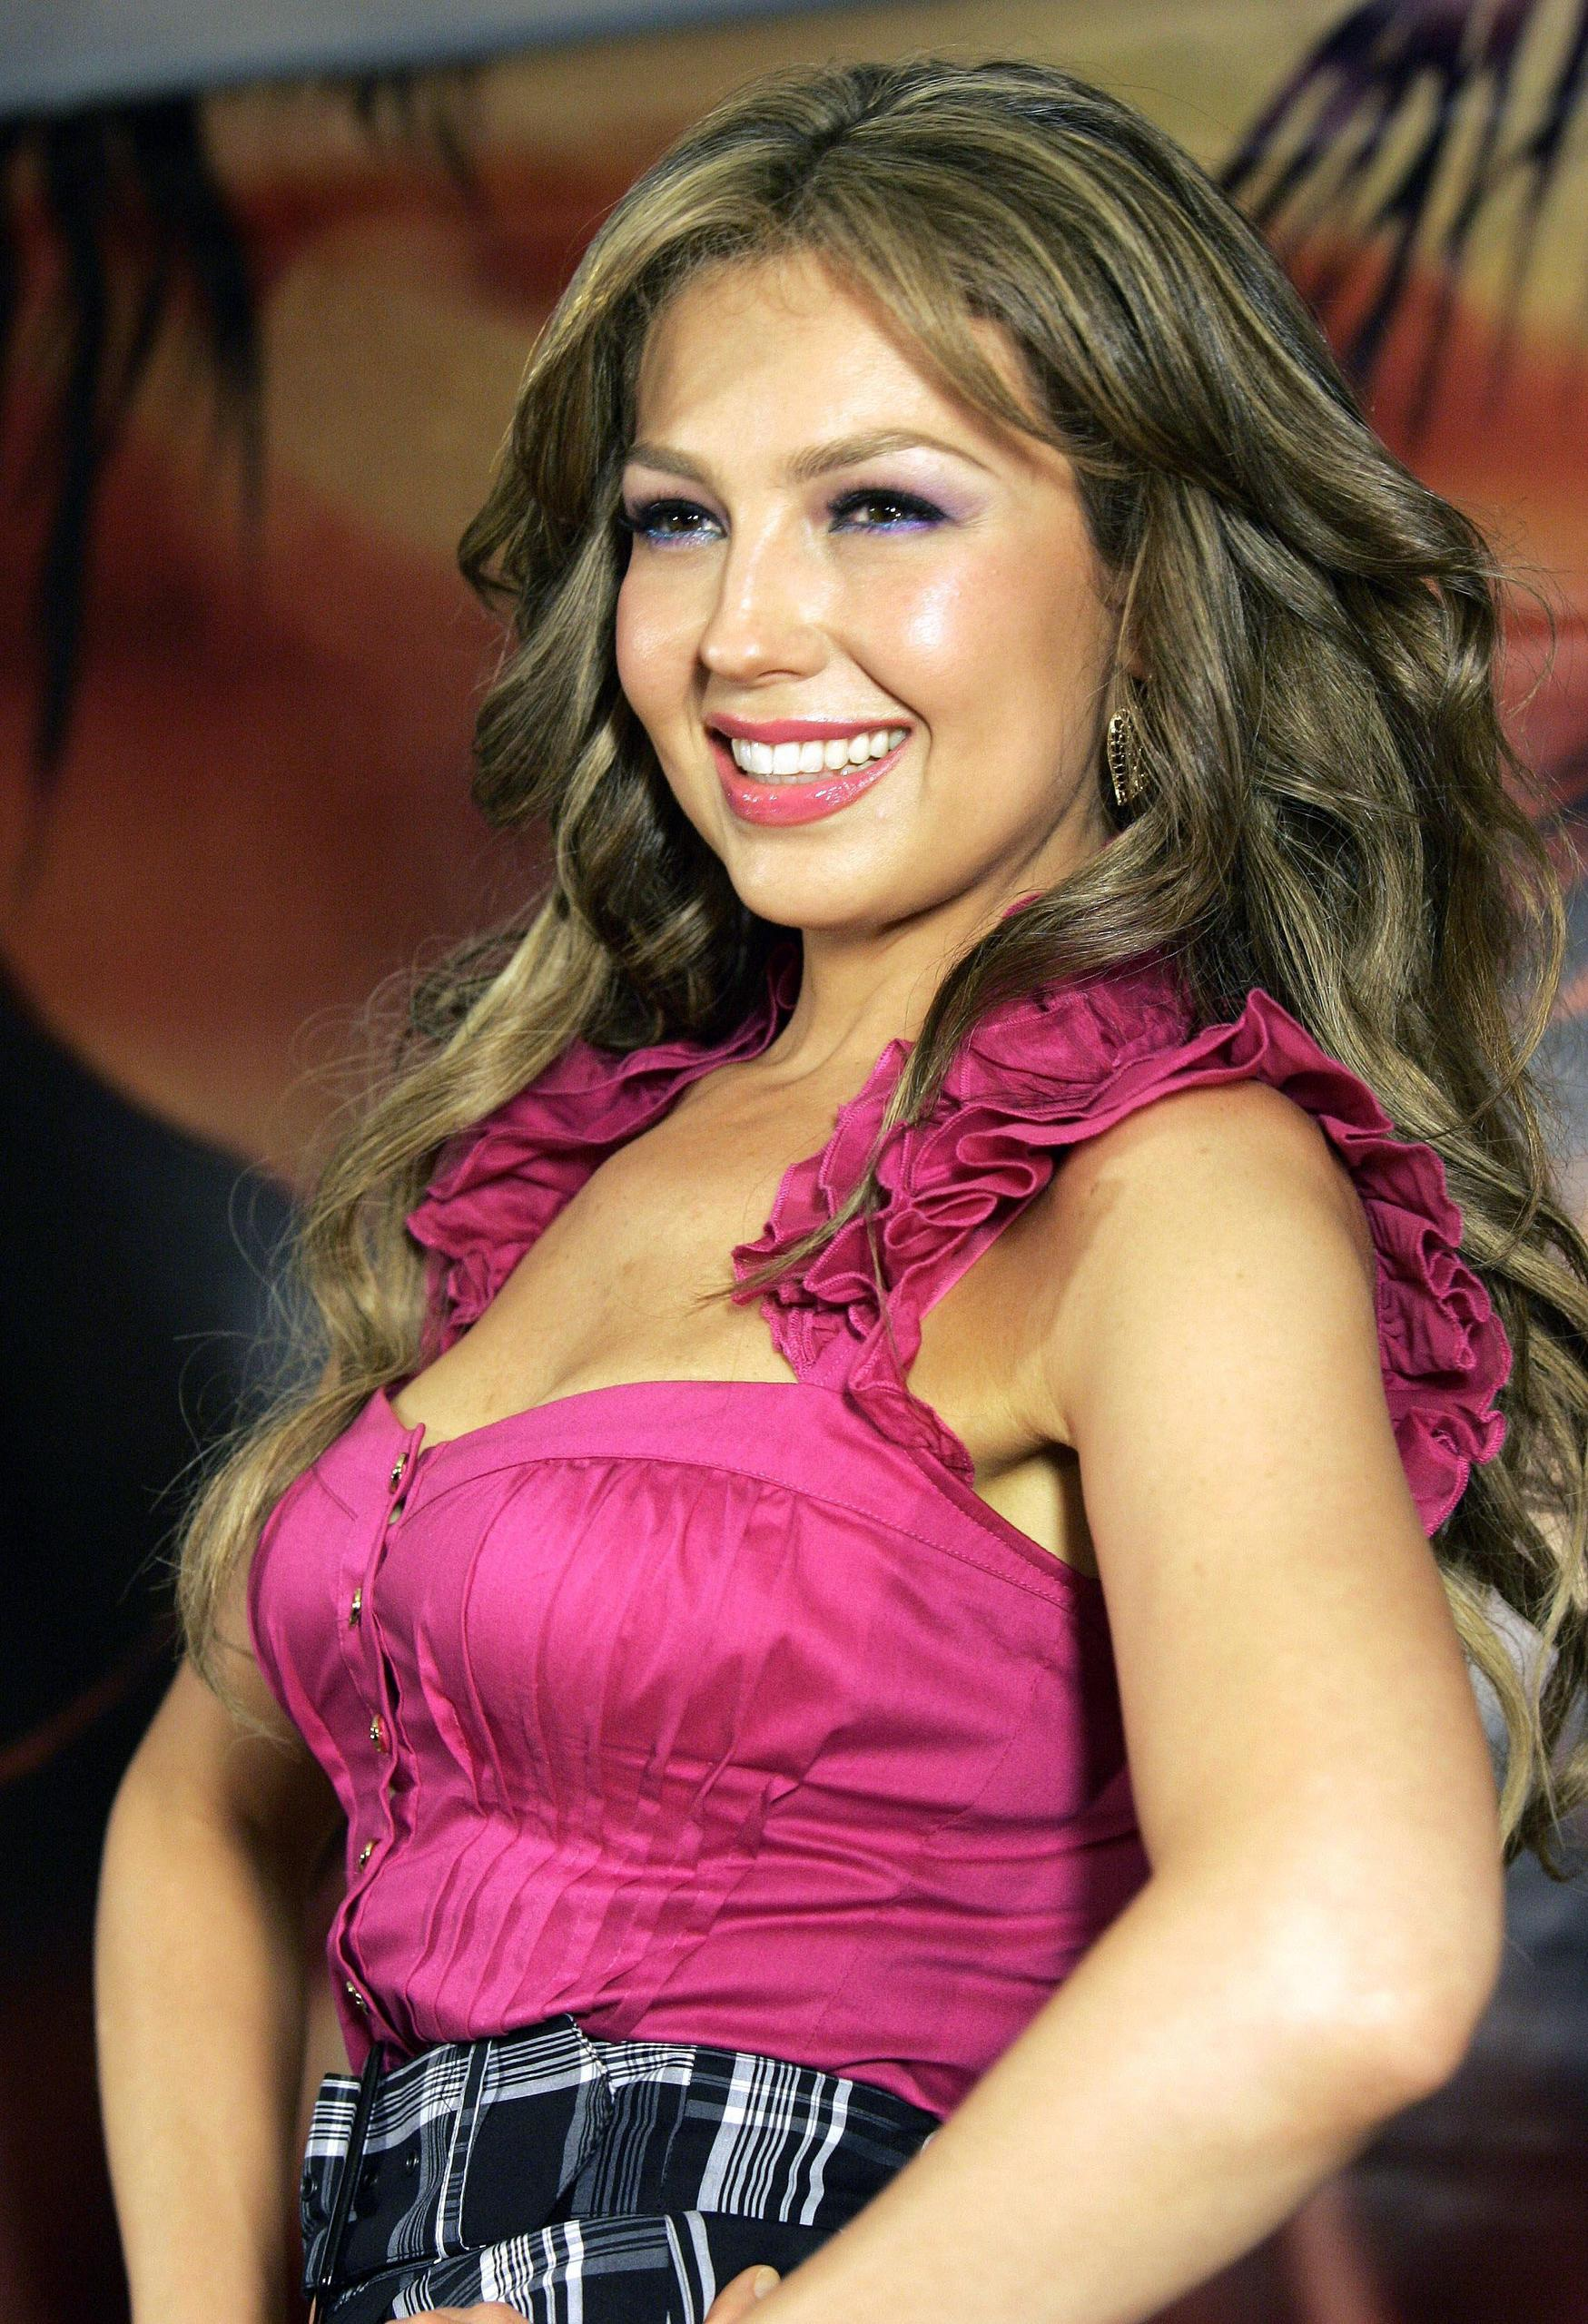 http://images2.fanpop.com/images/photos/6700000/Thalia-thalia-6708901-1749-2560.jpg